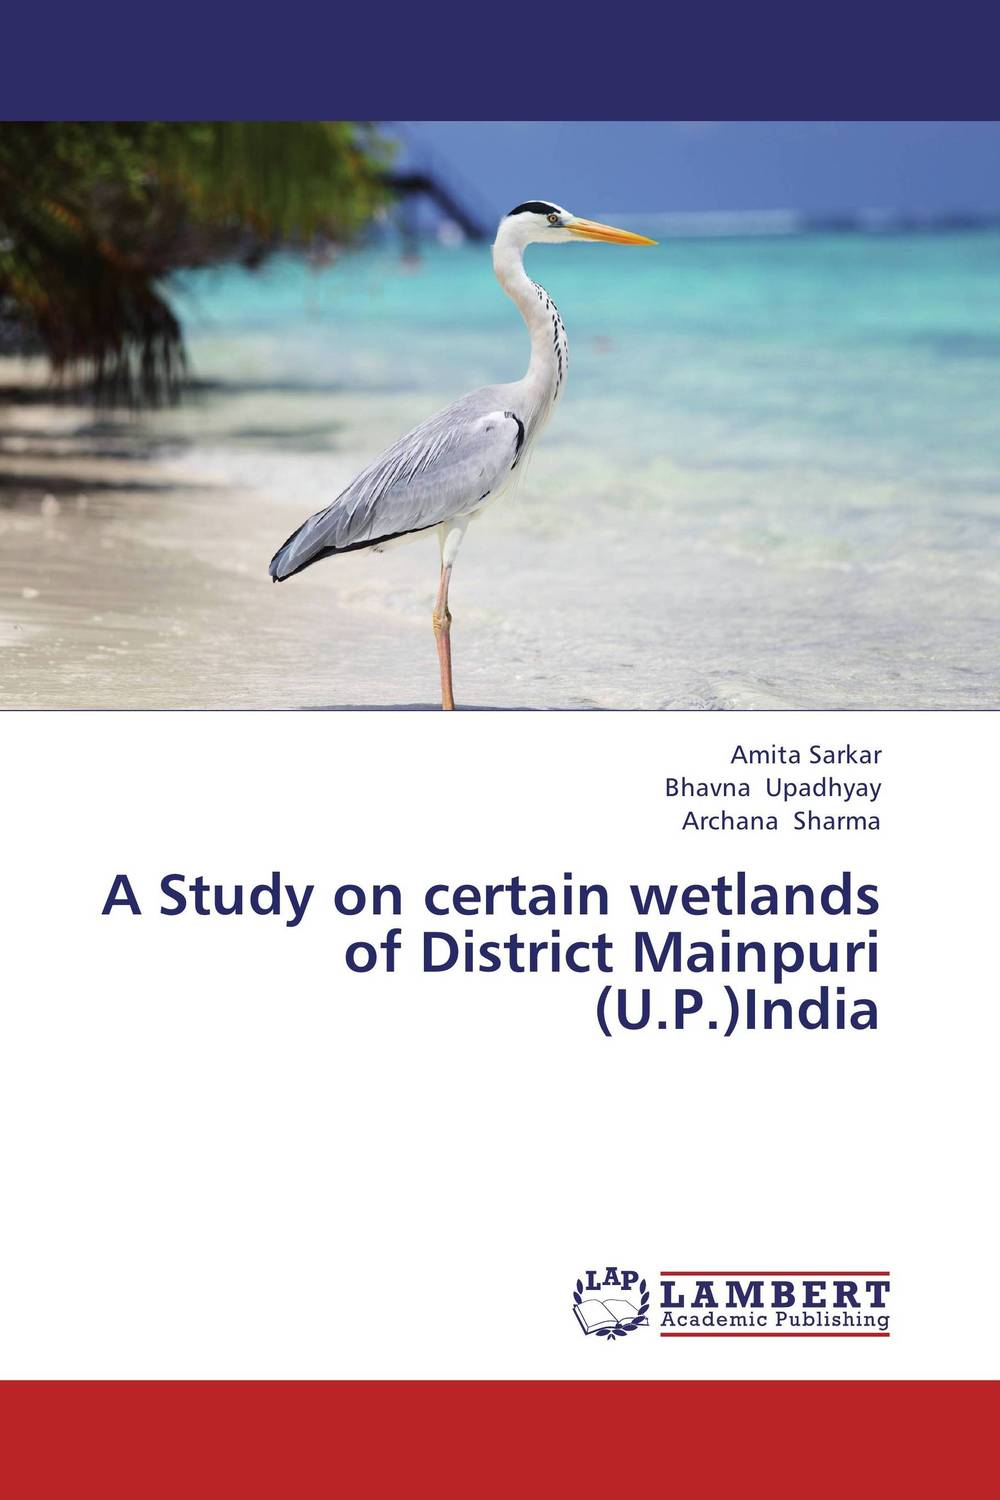 A Study on certain wetlands of District Mainpuri (U.P.)India the conference of the birds a study of farid ud din attars poem using jali diwani calligraphy